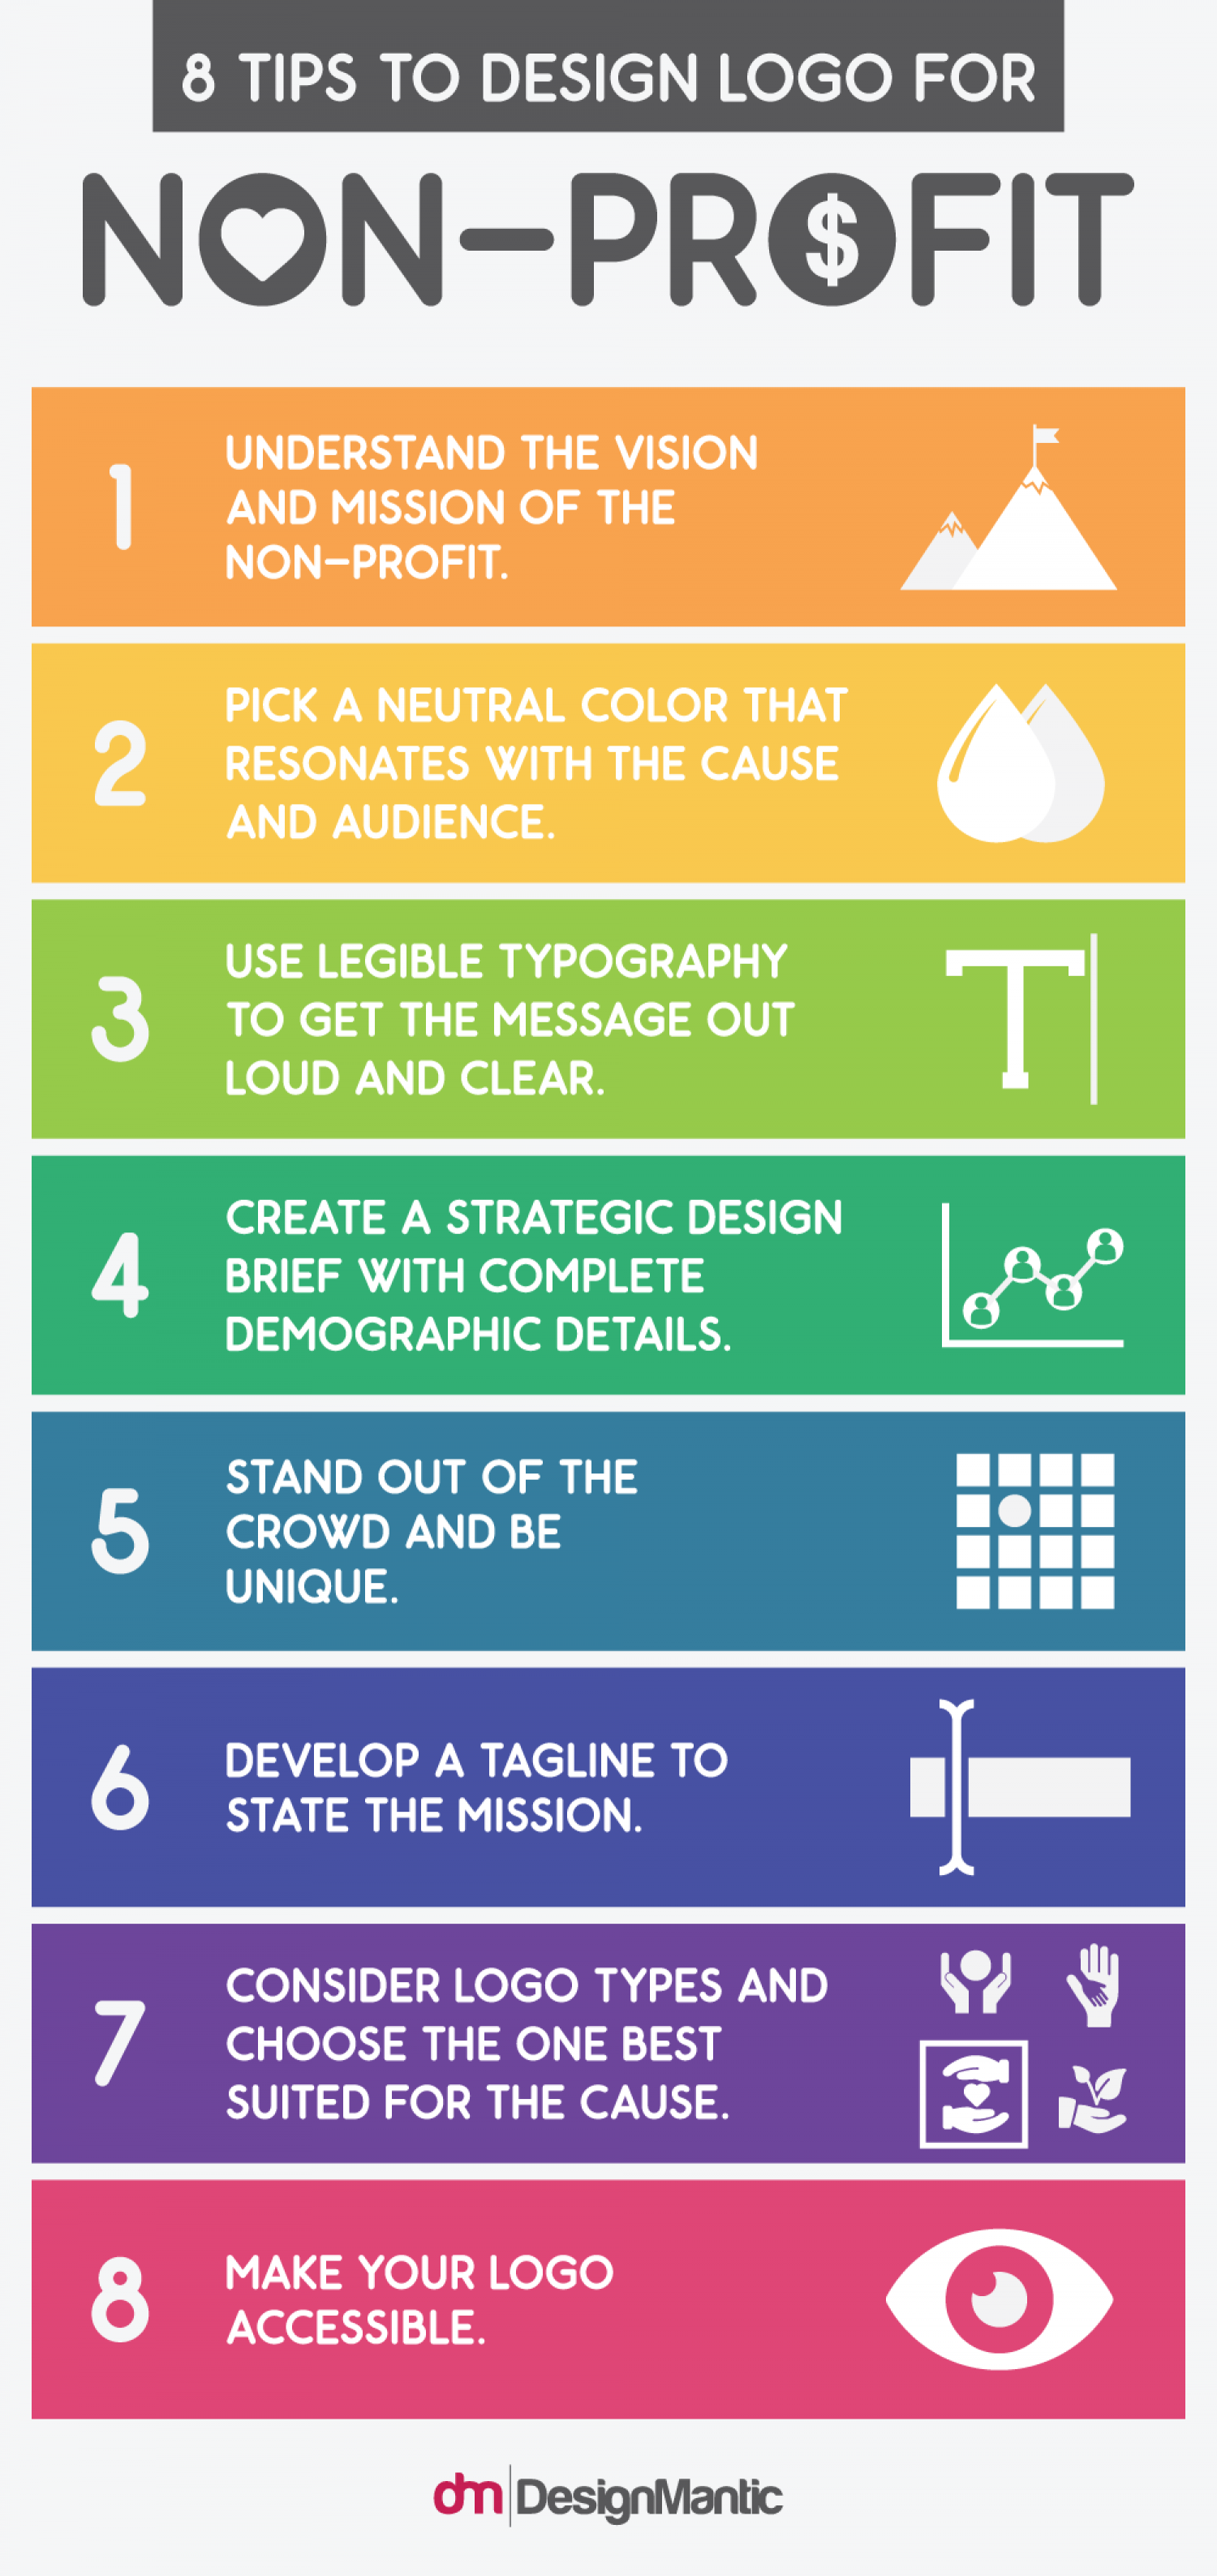 8 Tips To Design Logo For Non-Profit Infographic